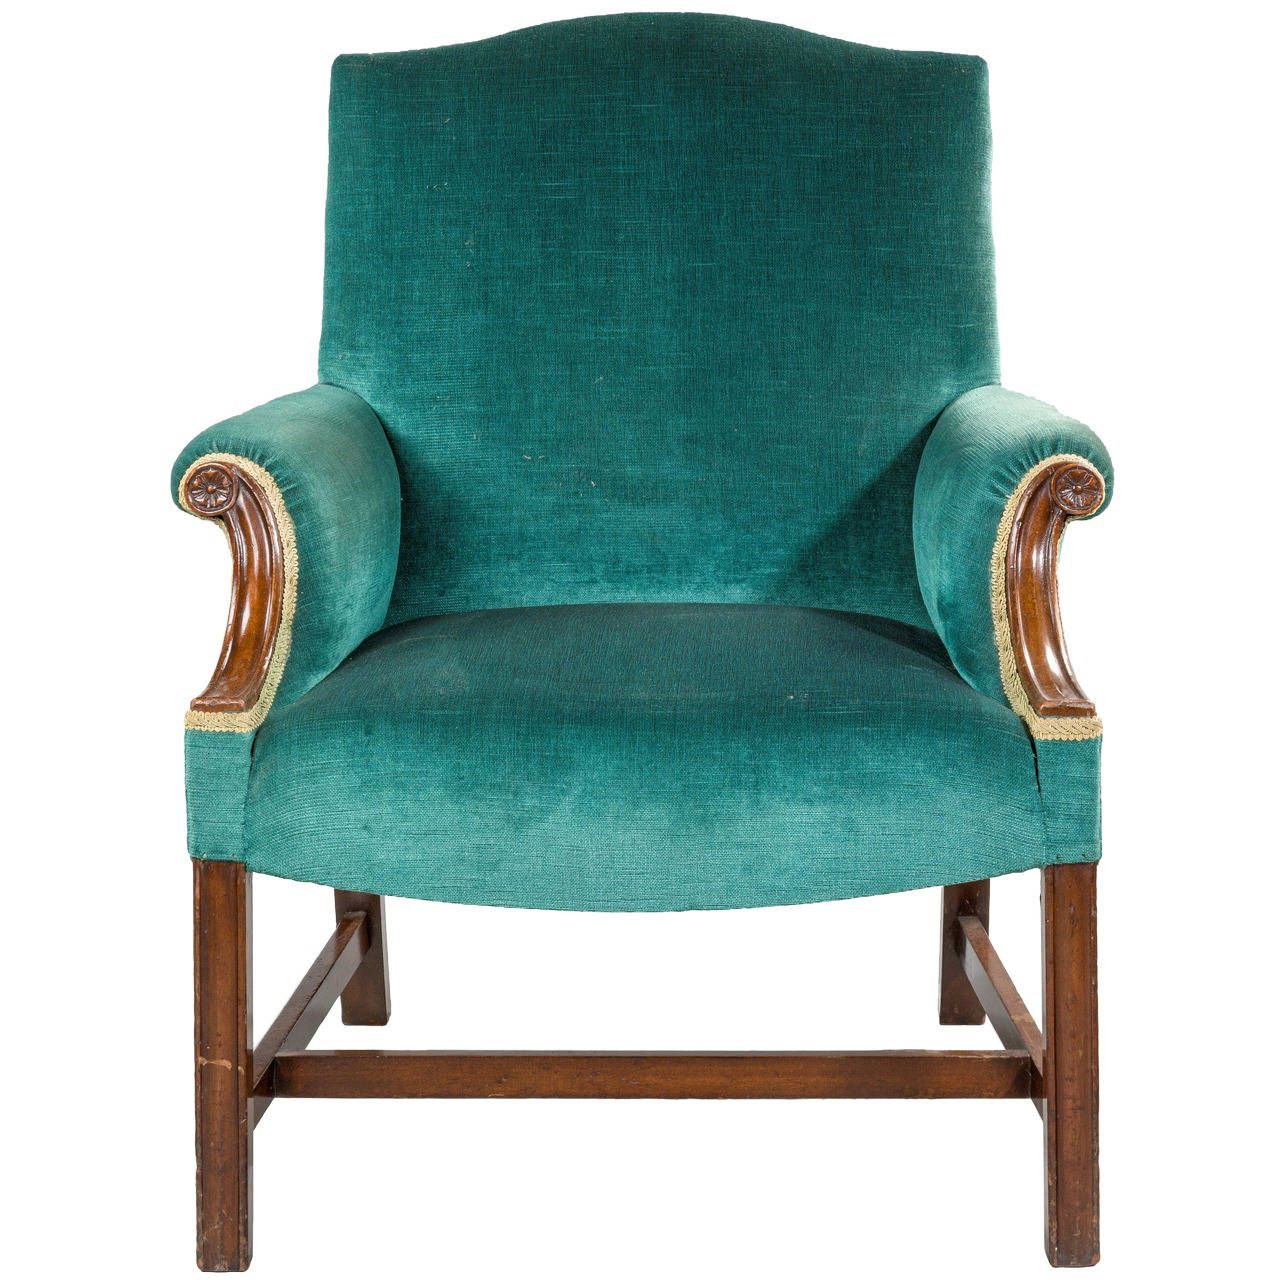 Chippendale Design Armchair | From a unique collection of antique and modern armchairs at https://www.1stdibs.com/furniture/seating/armchairs/